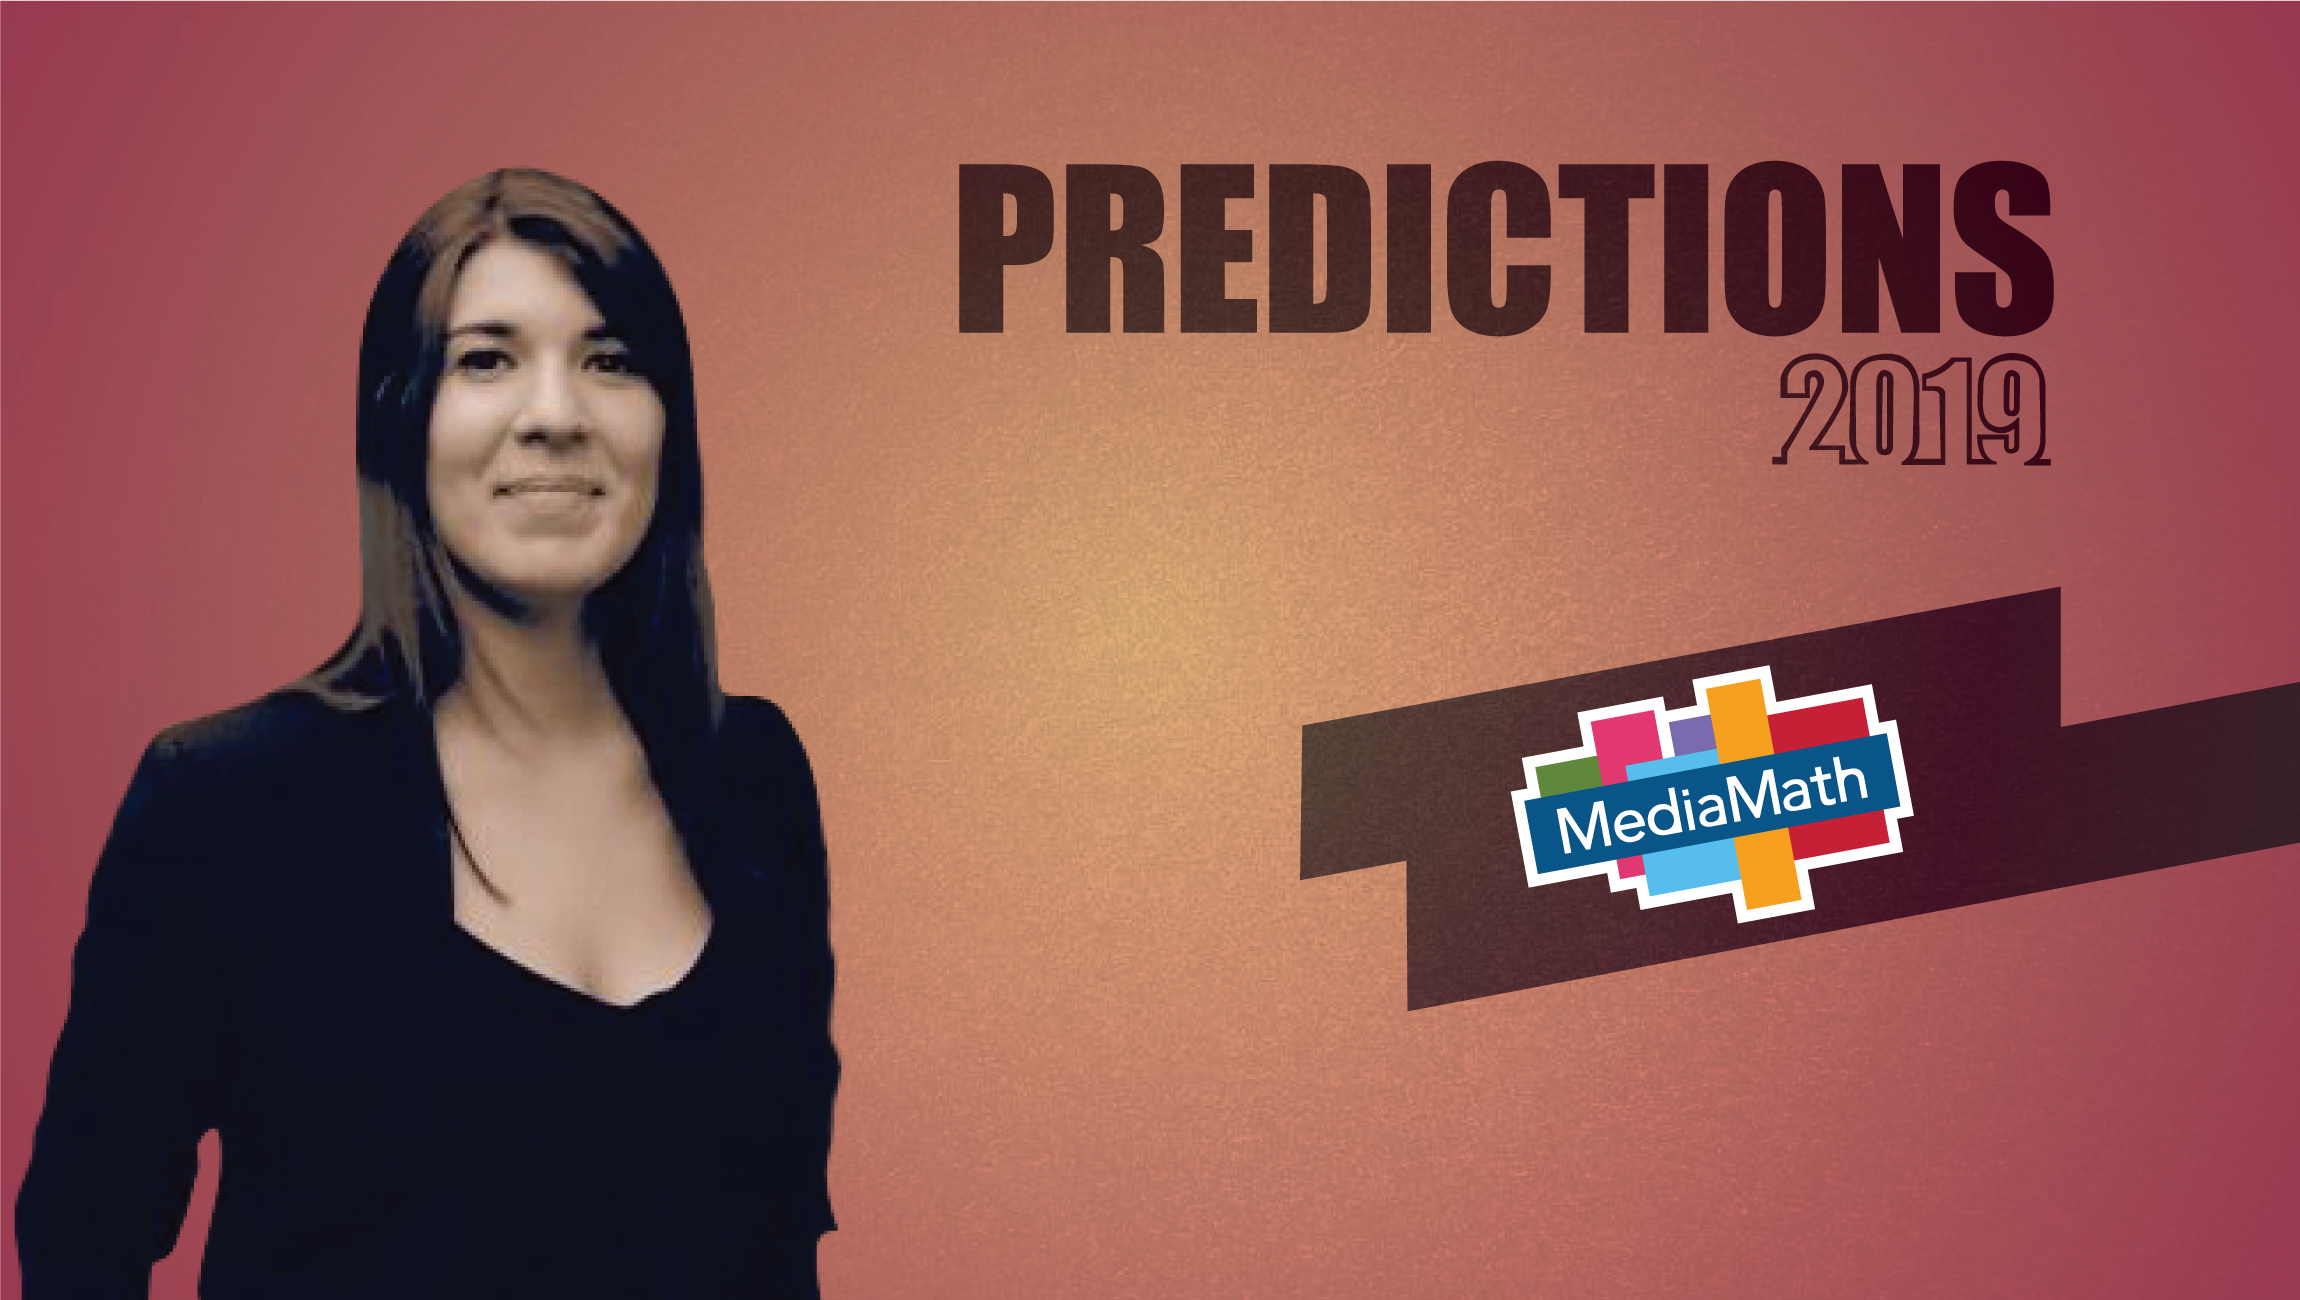 Prediction Series 2019: Interview with Floriana Nicastro, Director of Mobile Product Solution, MediaMath